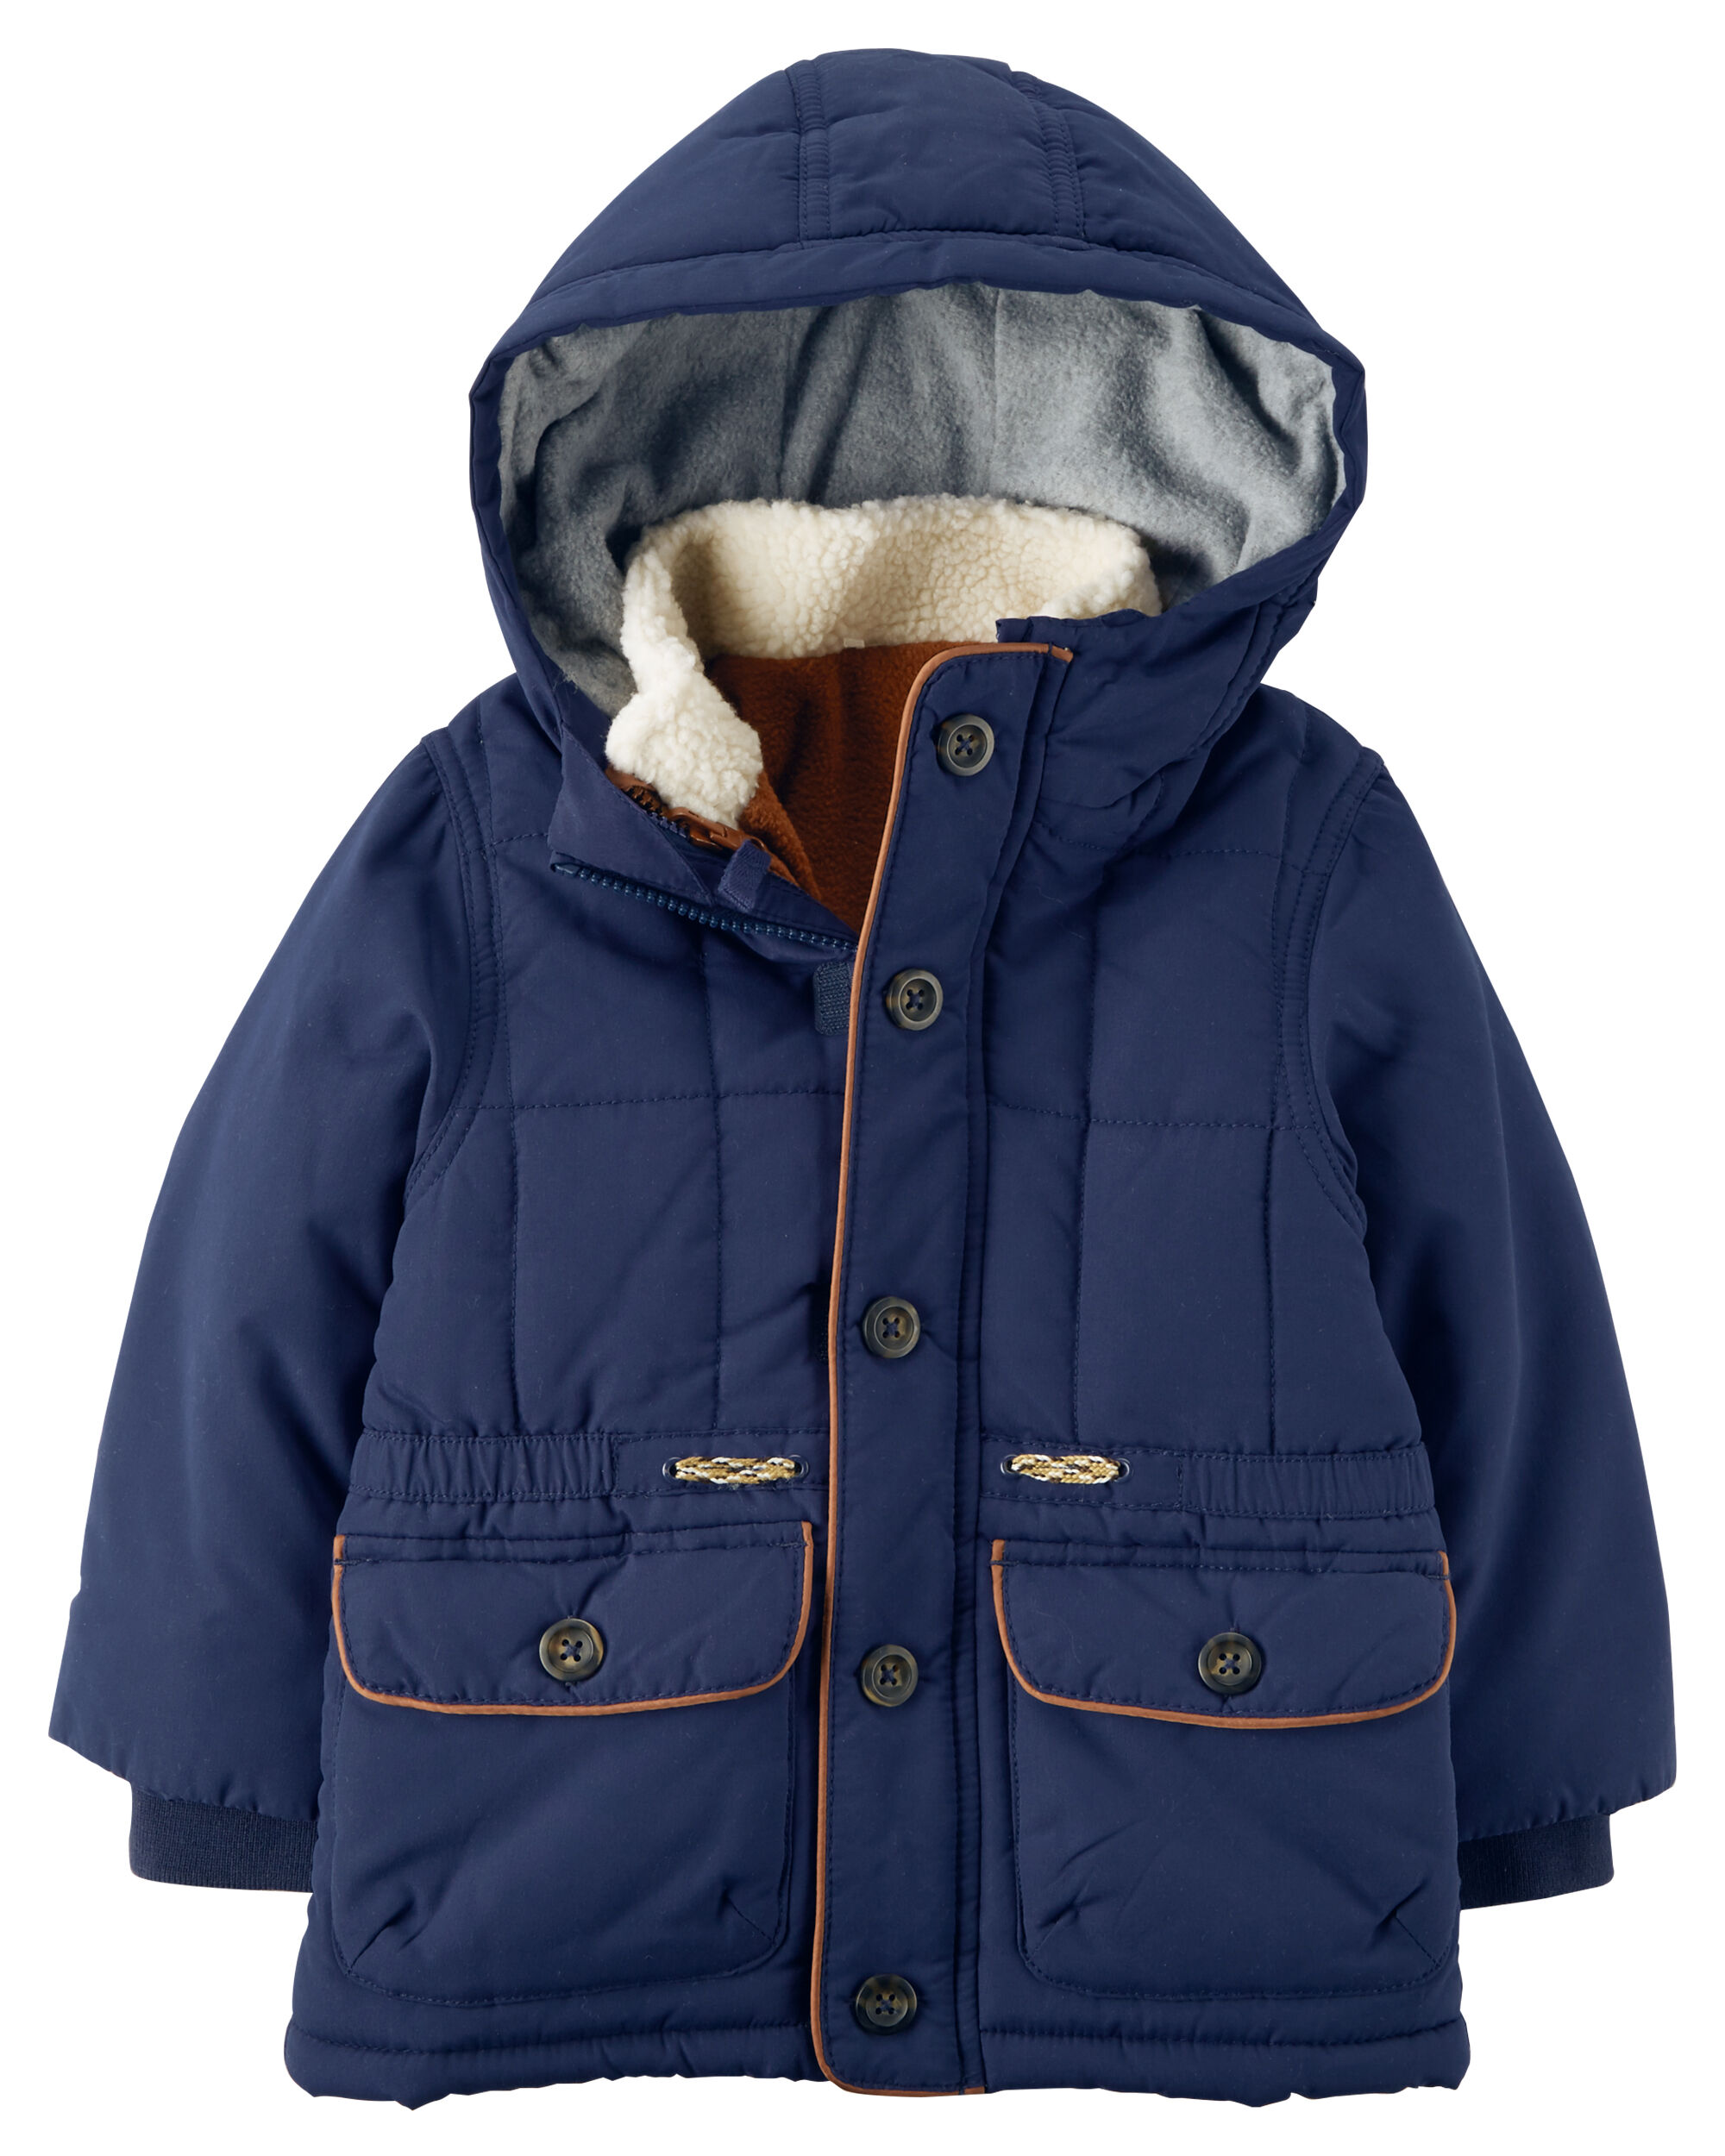 YOUNGER BOYS CLOTHING. Whether you're looking for mix and match casuals, brilliant partywear, smart looks or a stylish new boys' jackets for the season, see what's new in our collection for younger boys. From ages 3 months to 6 years, browse camo and denim designs or shop colour popping styles.